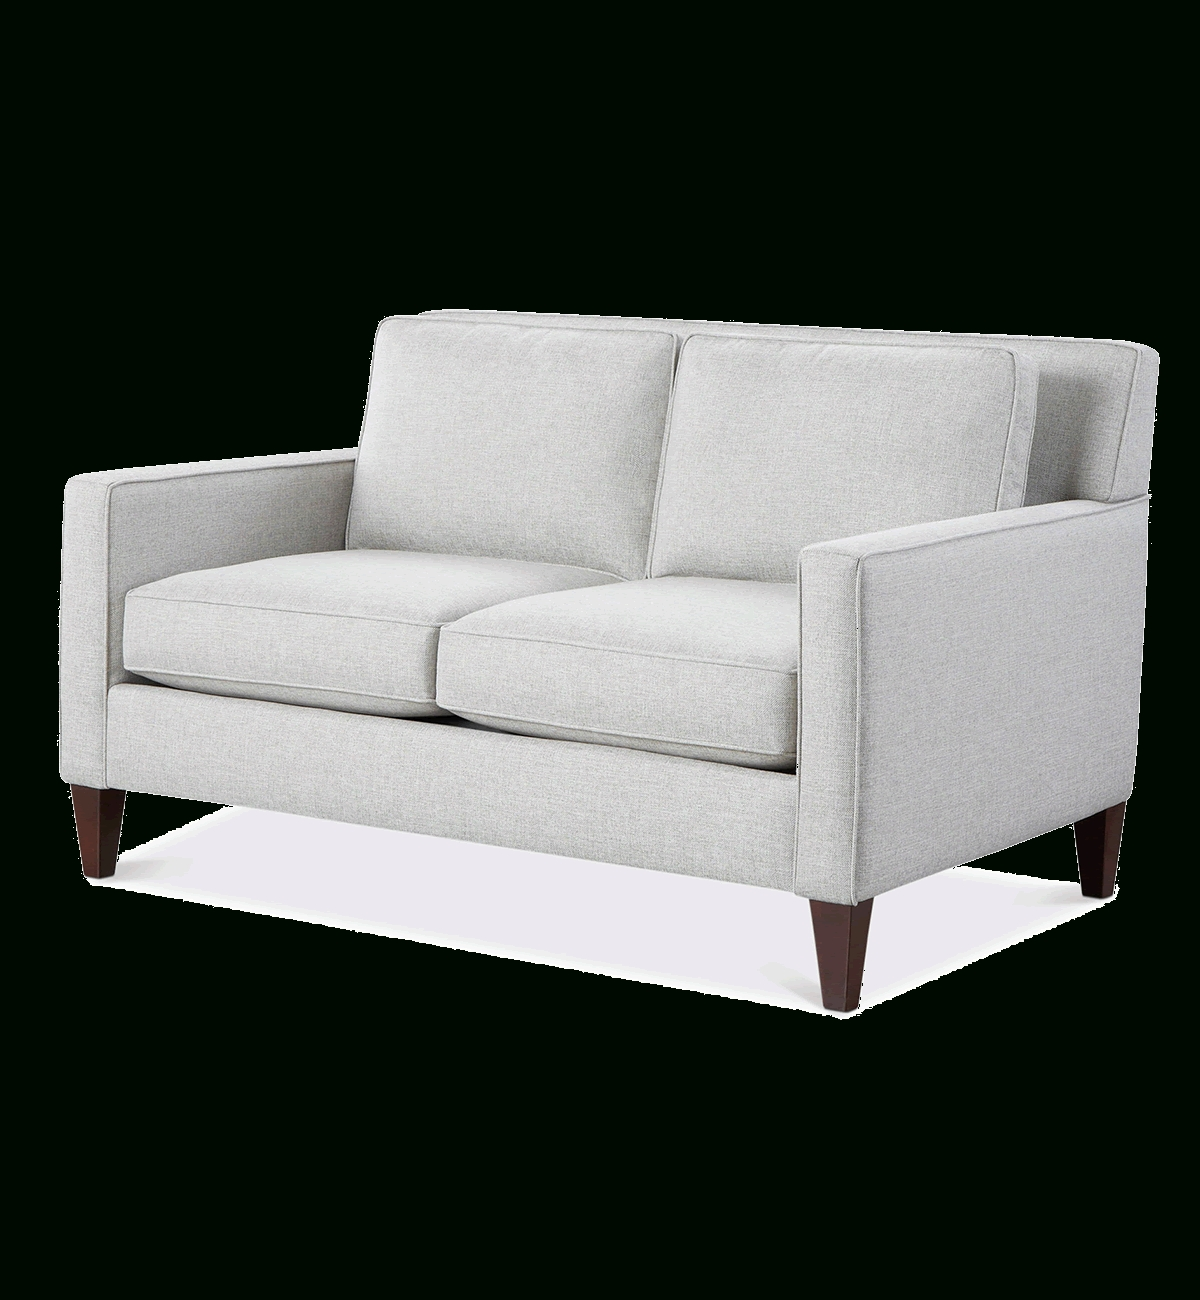 Well Known Macys Sofas For Couches And Sofas – Macy's (View 10 of 15)